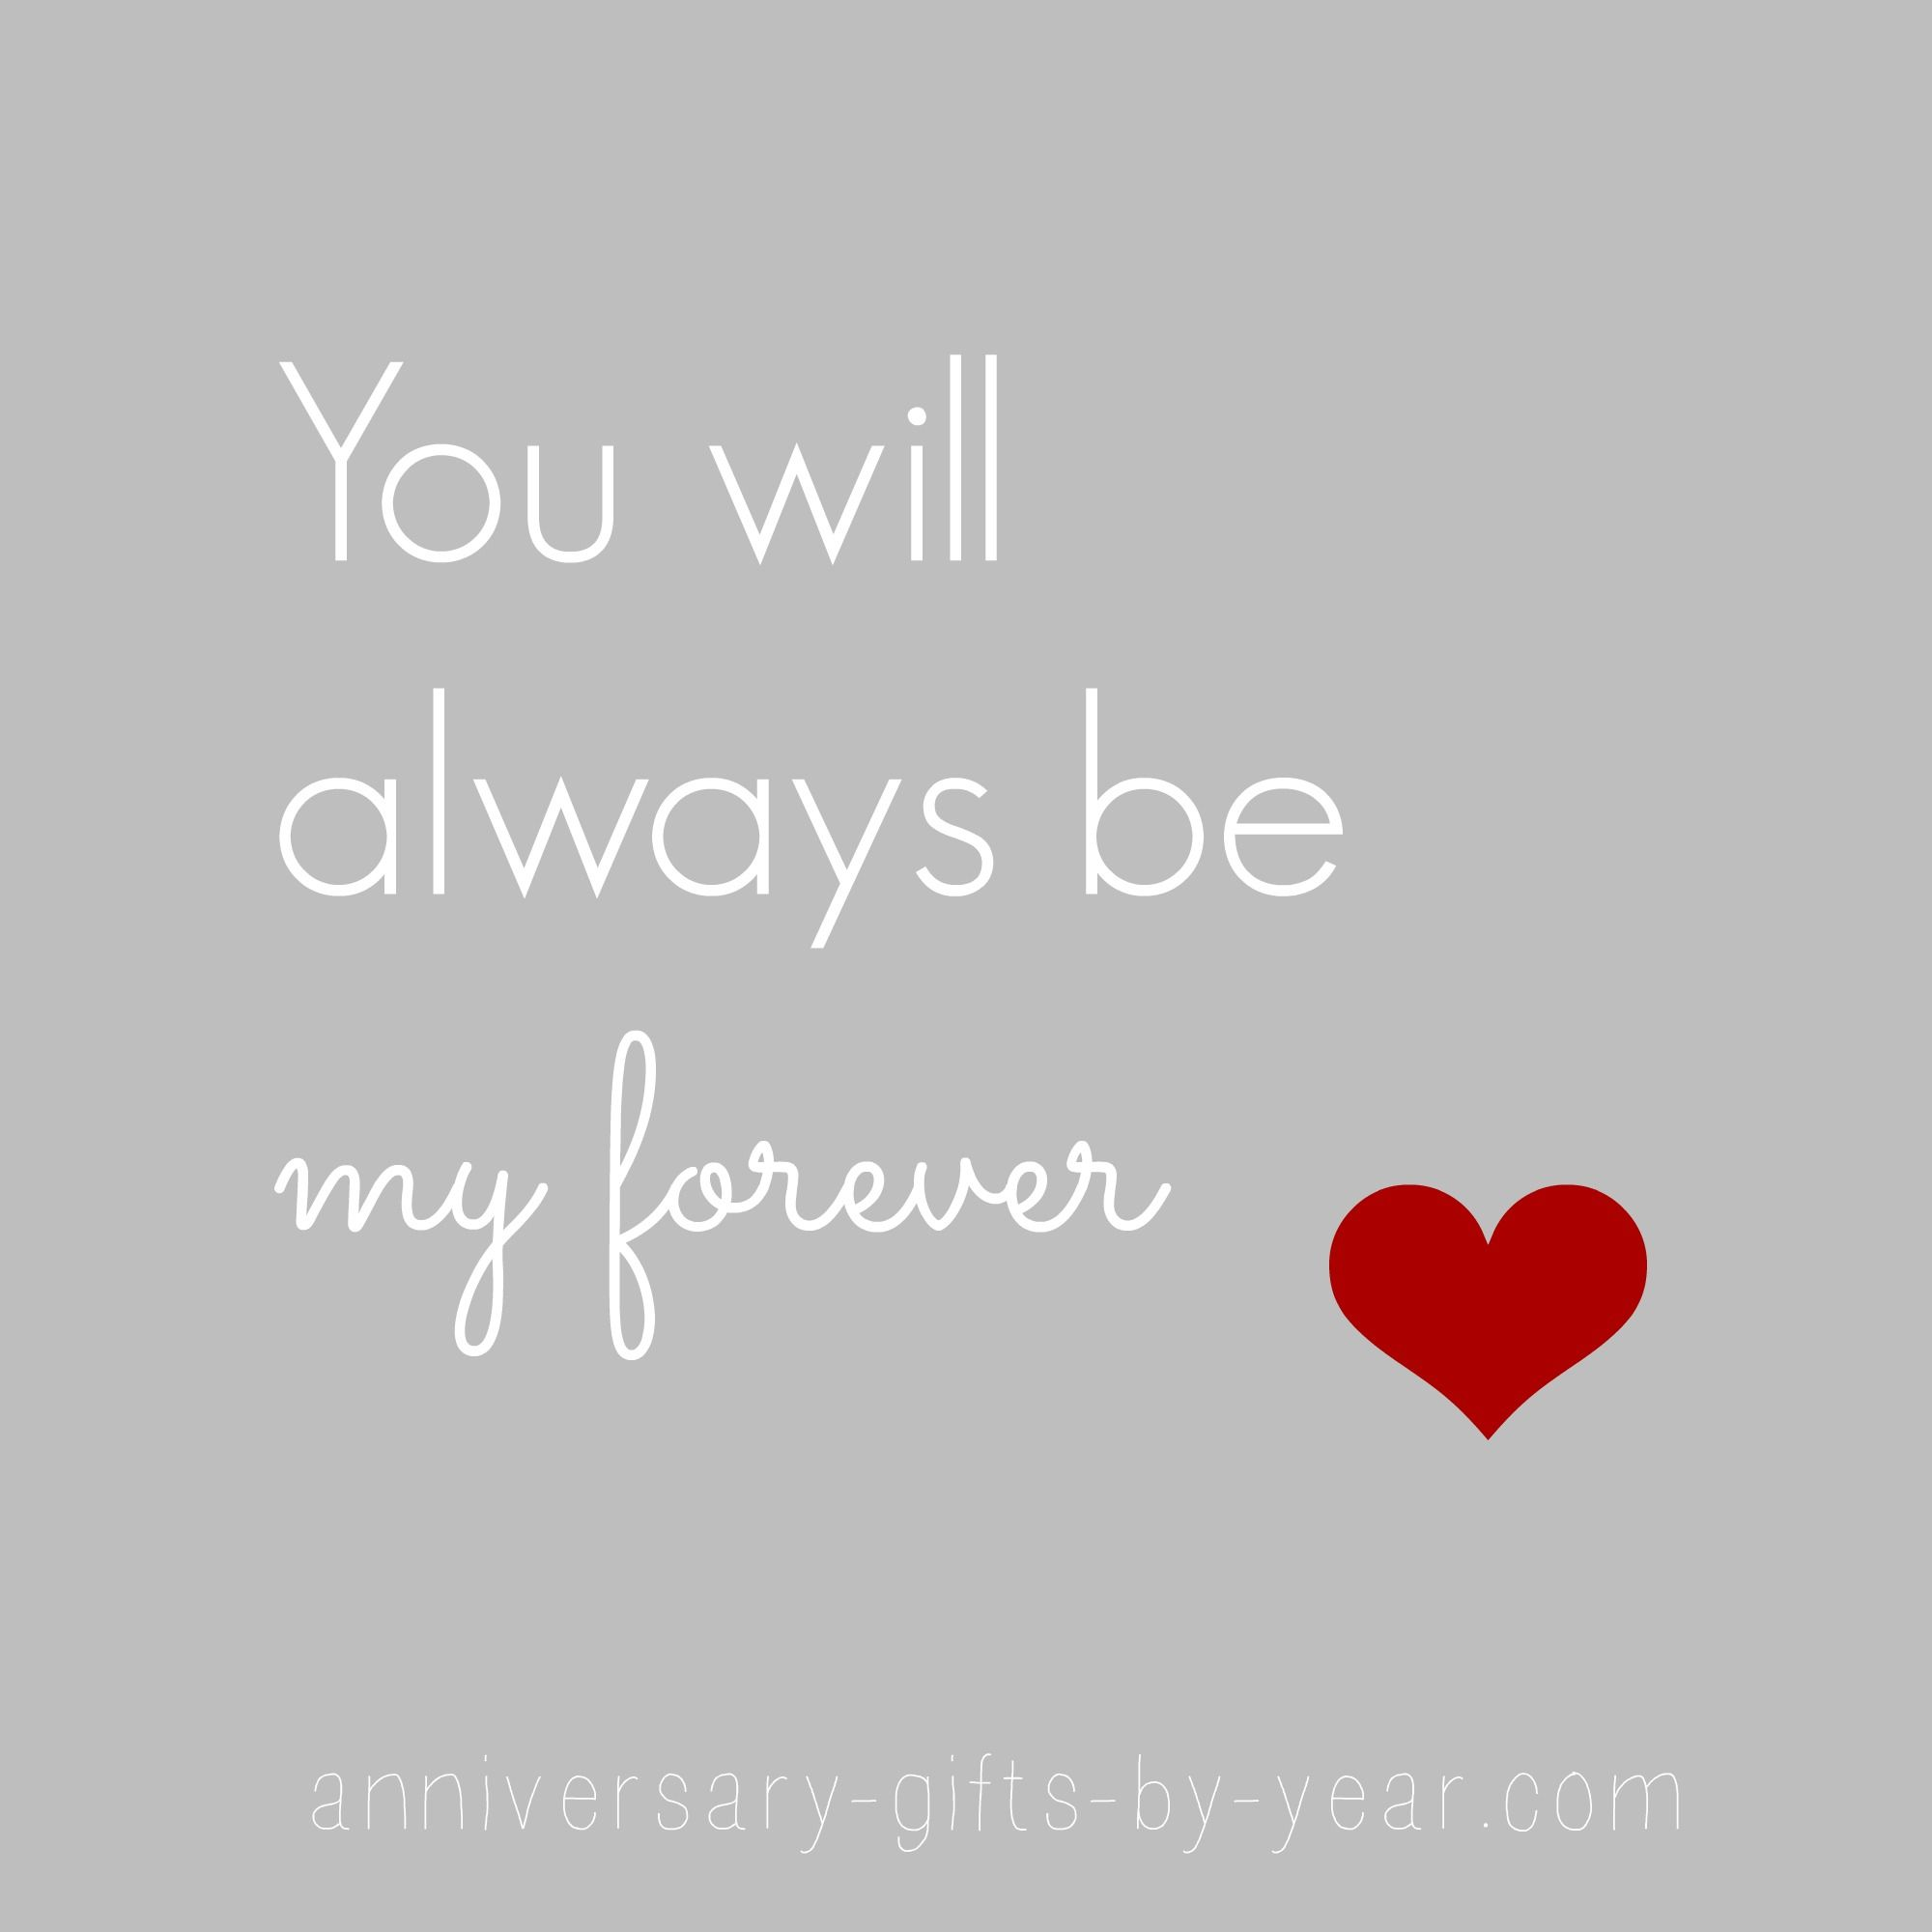 Wedding Anniversary Quotes For Wife: Perfect For Anniversary Cards And